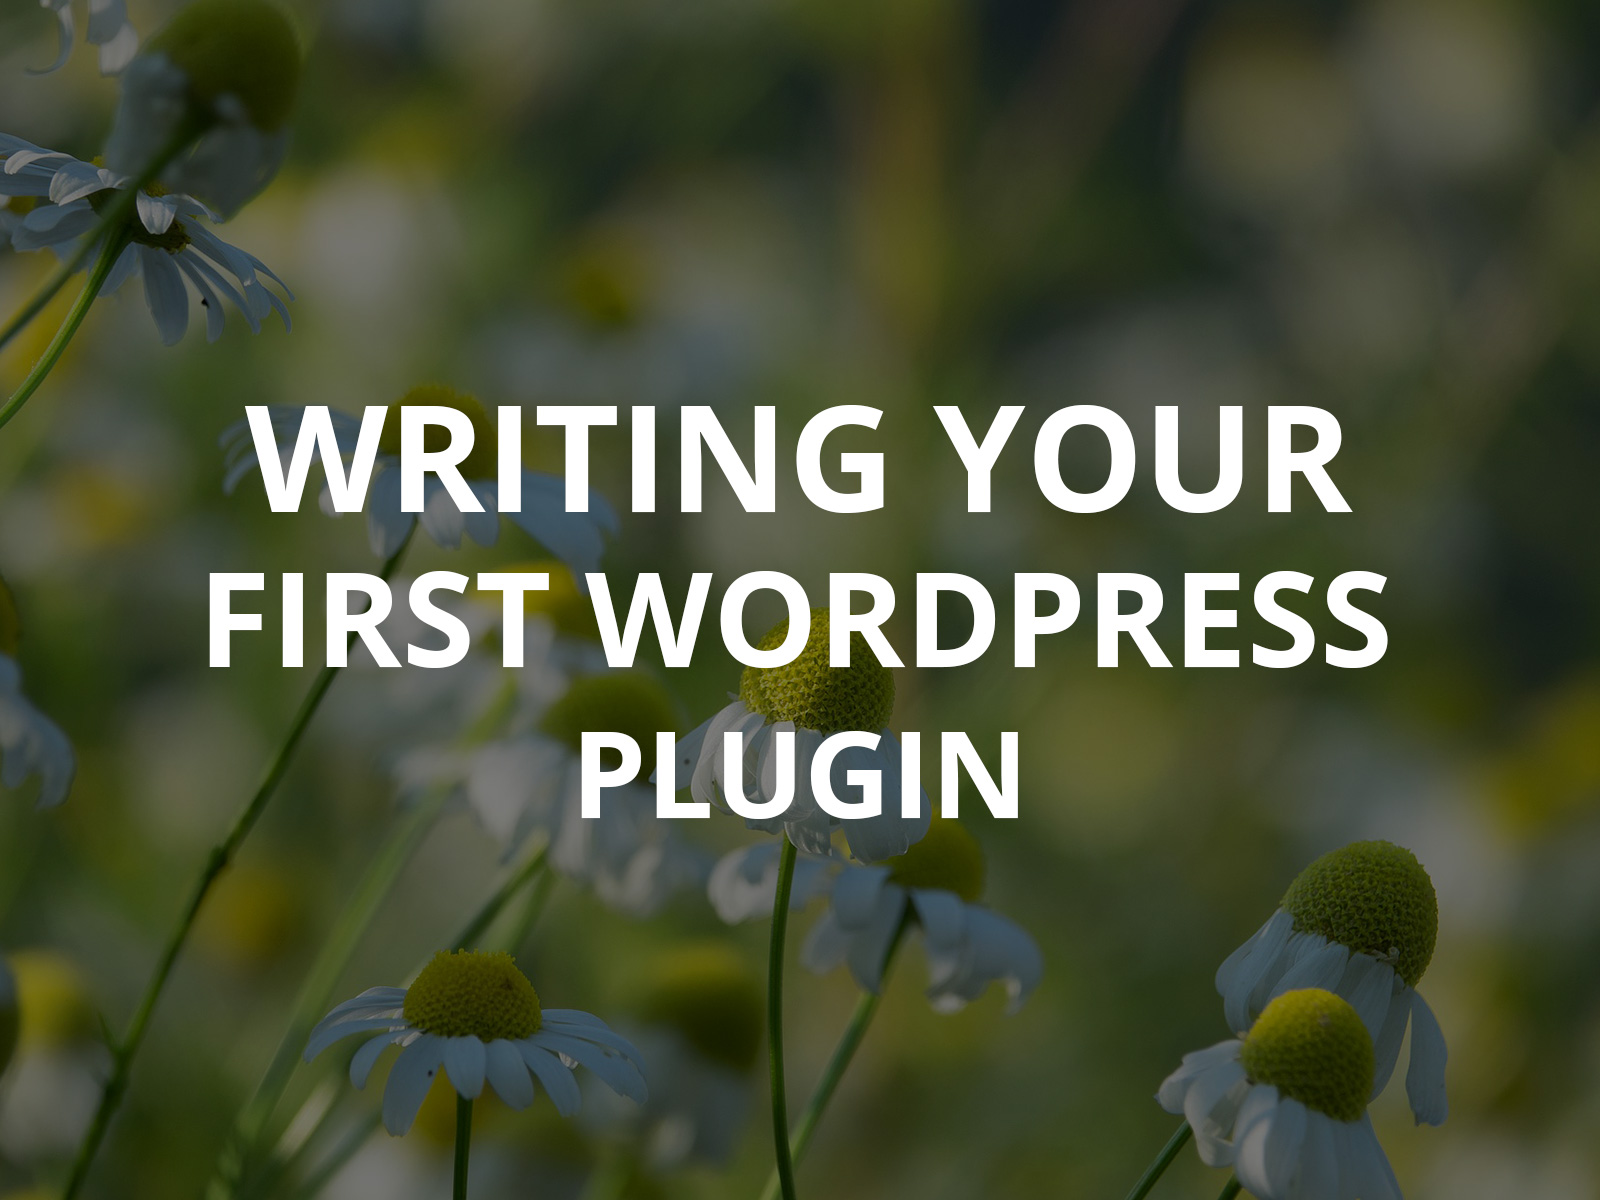 How to Go About Writing Your First WordPress Plugin